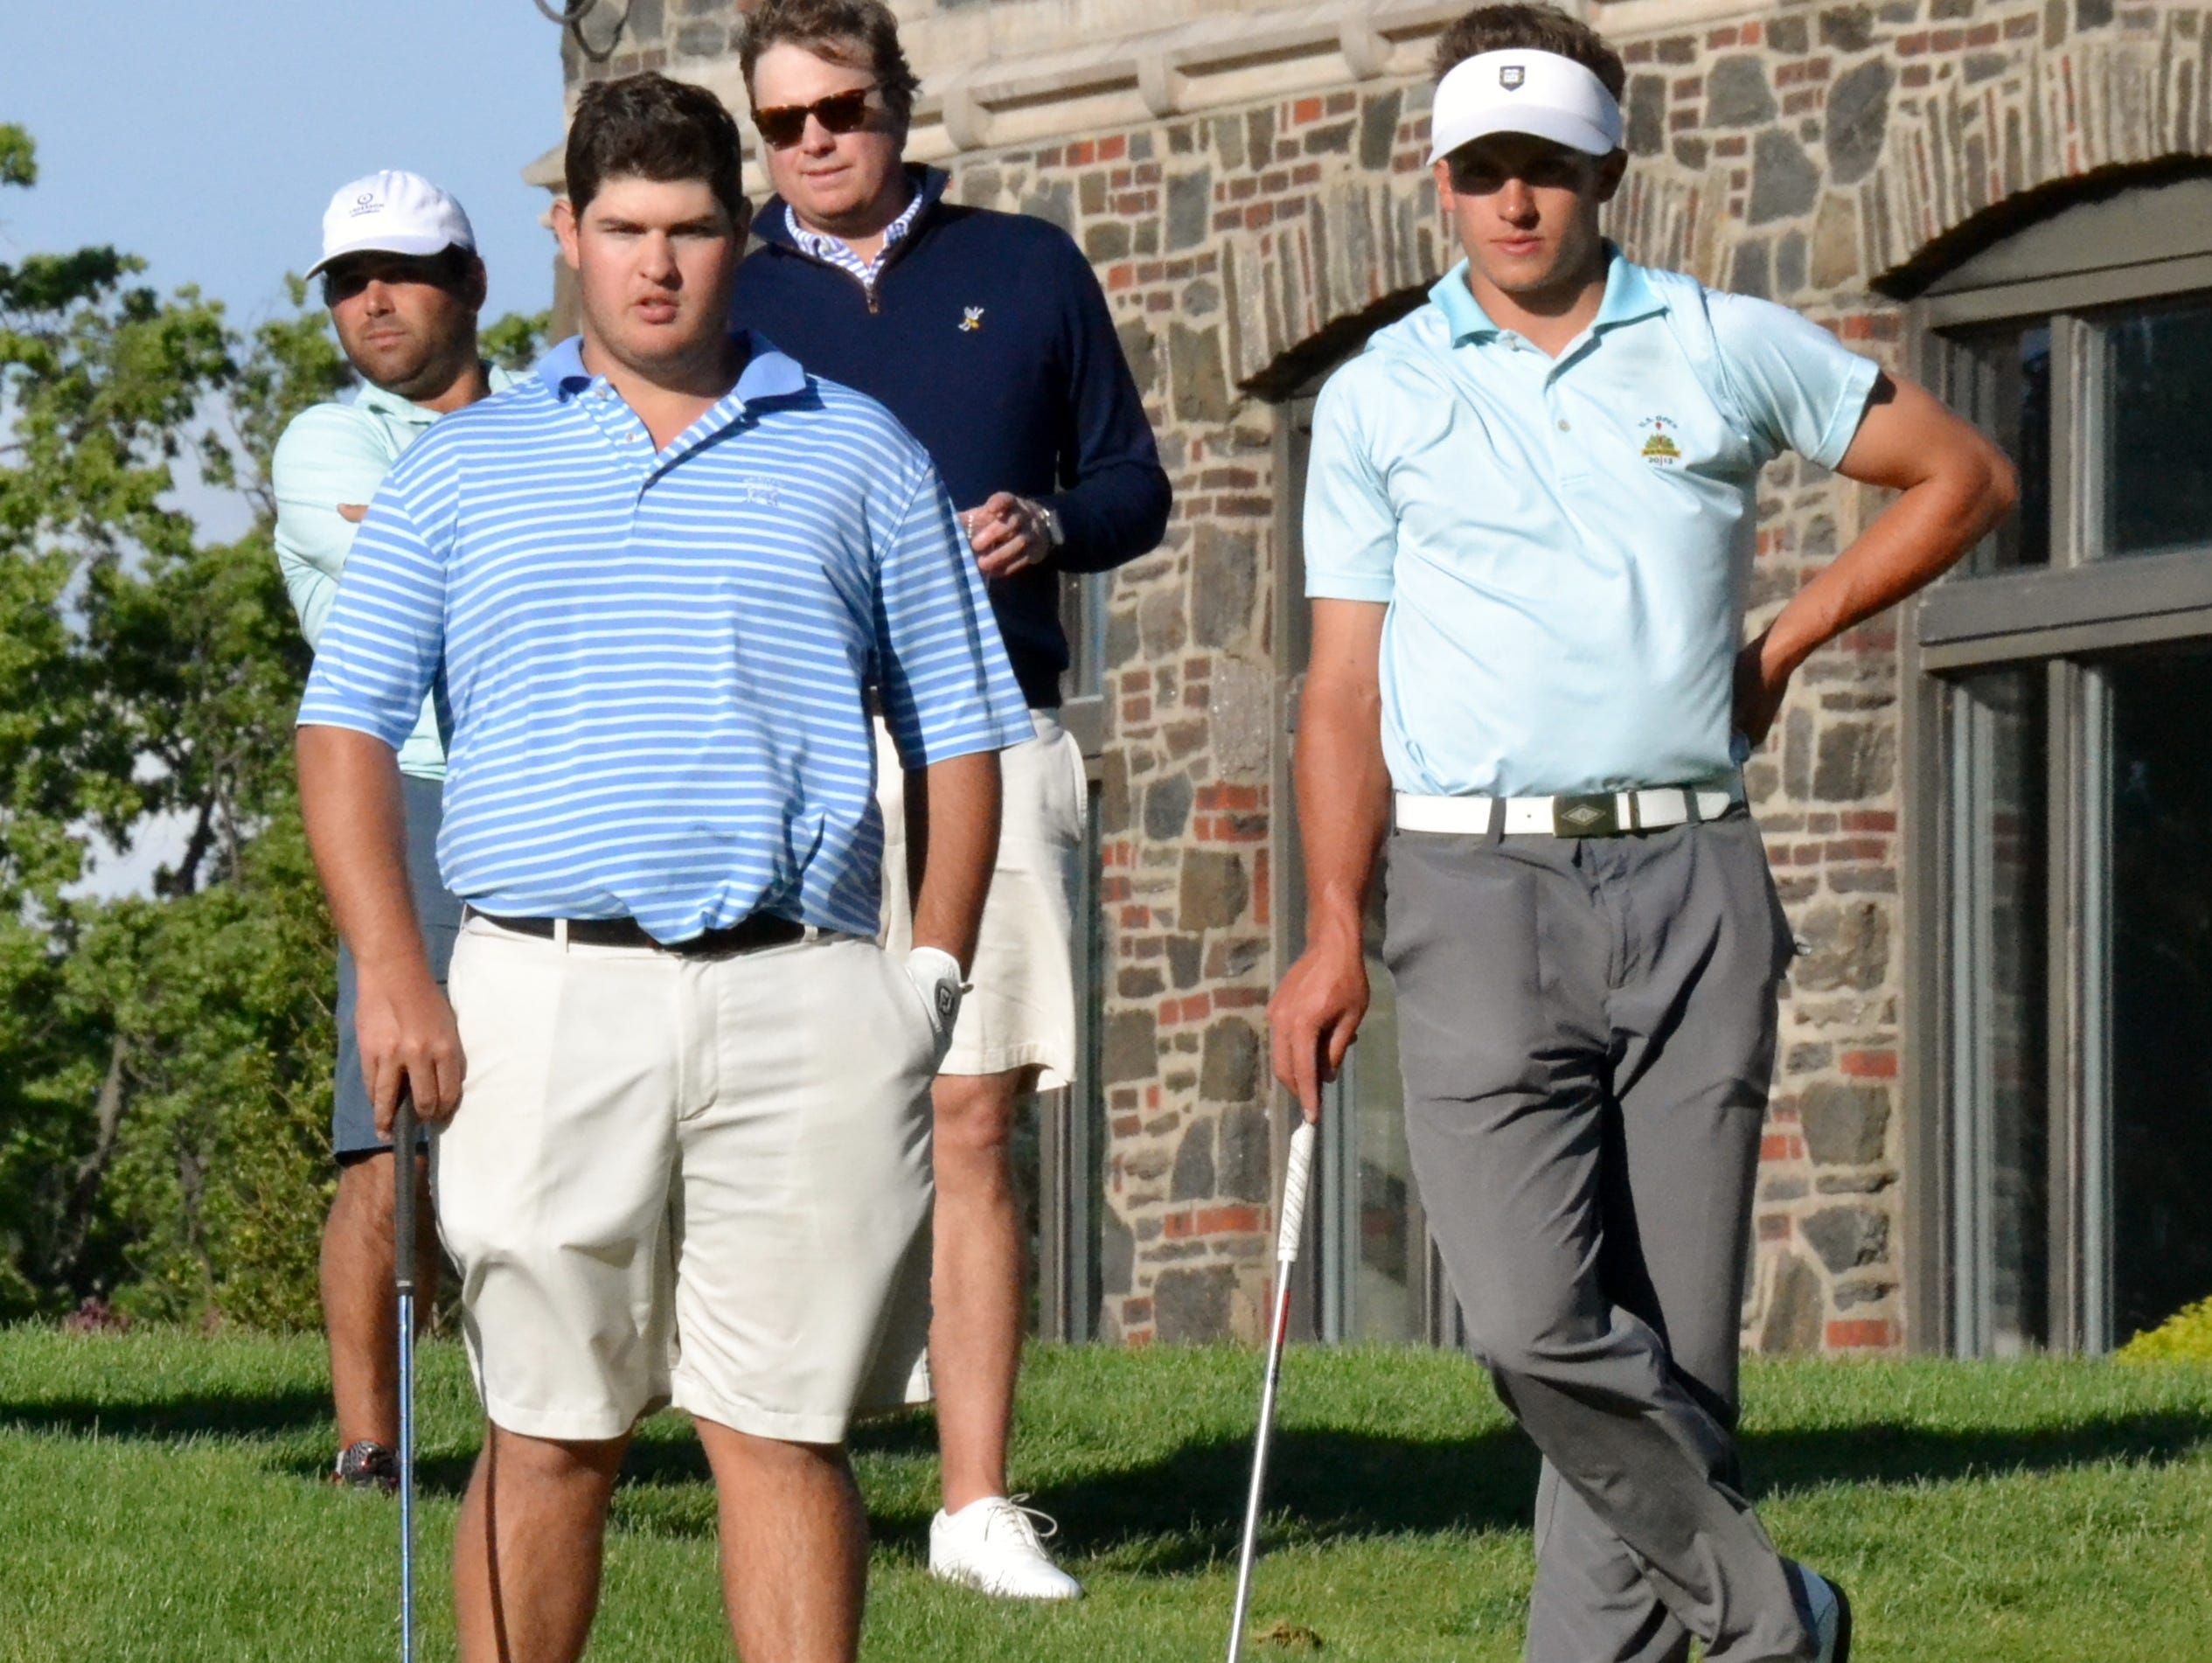 Chris Troy (left) and James Nicholas watch Andy Cooper and Craig Hurlbert putt on the 18th hole at Winged Foot West in the championship of the Anderson Memorial.